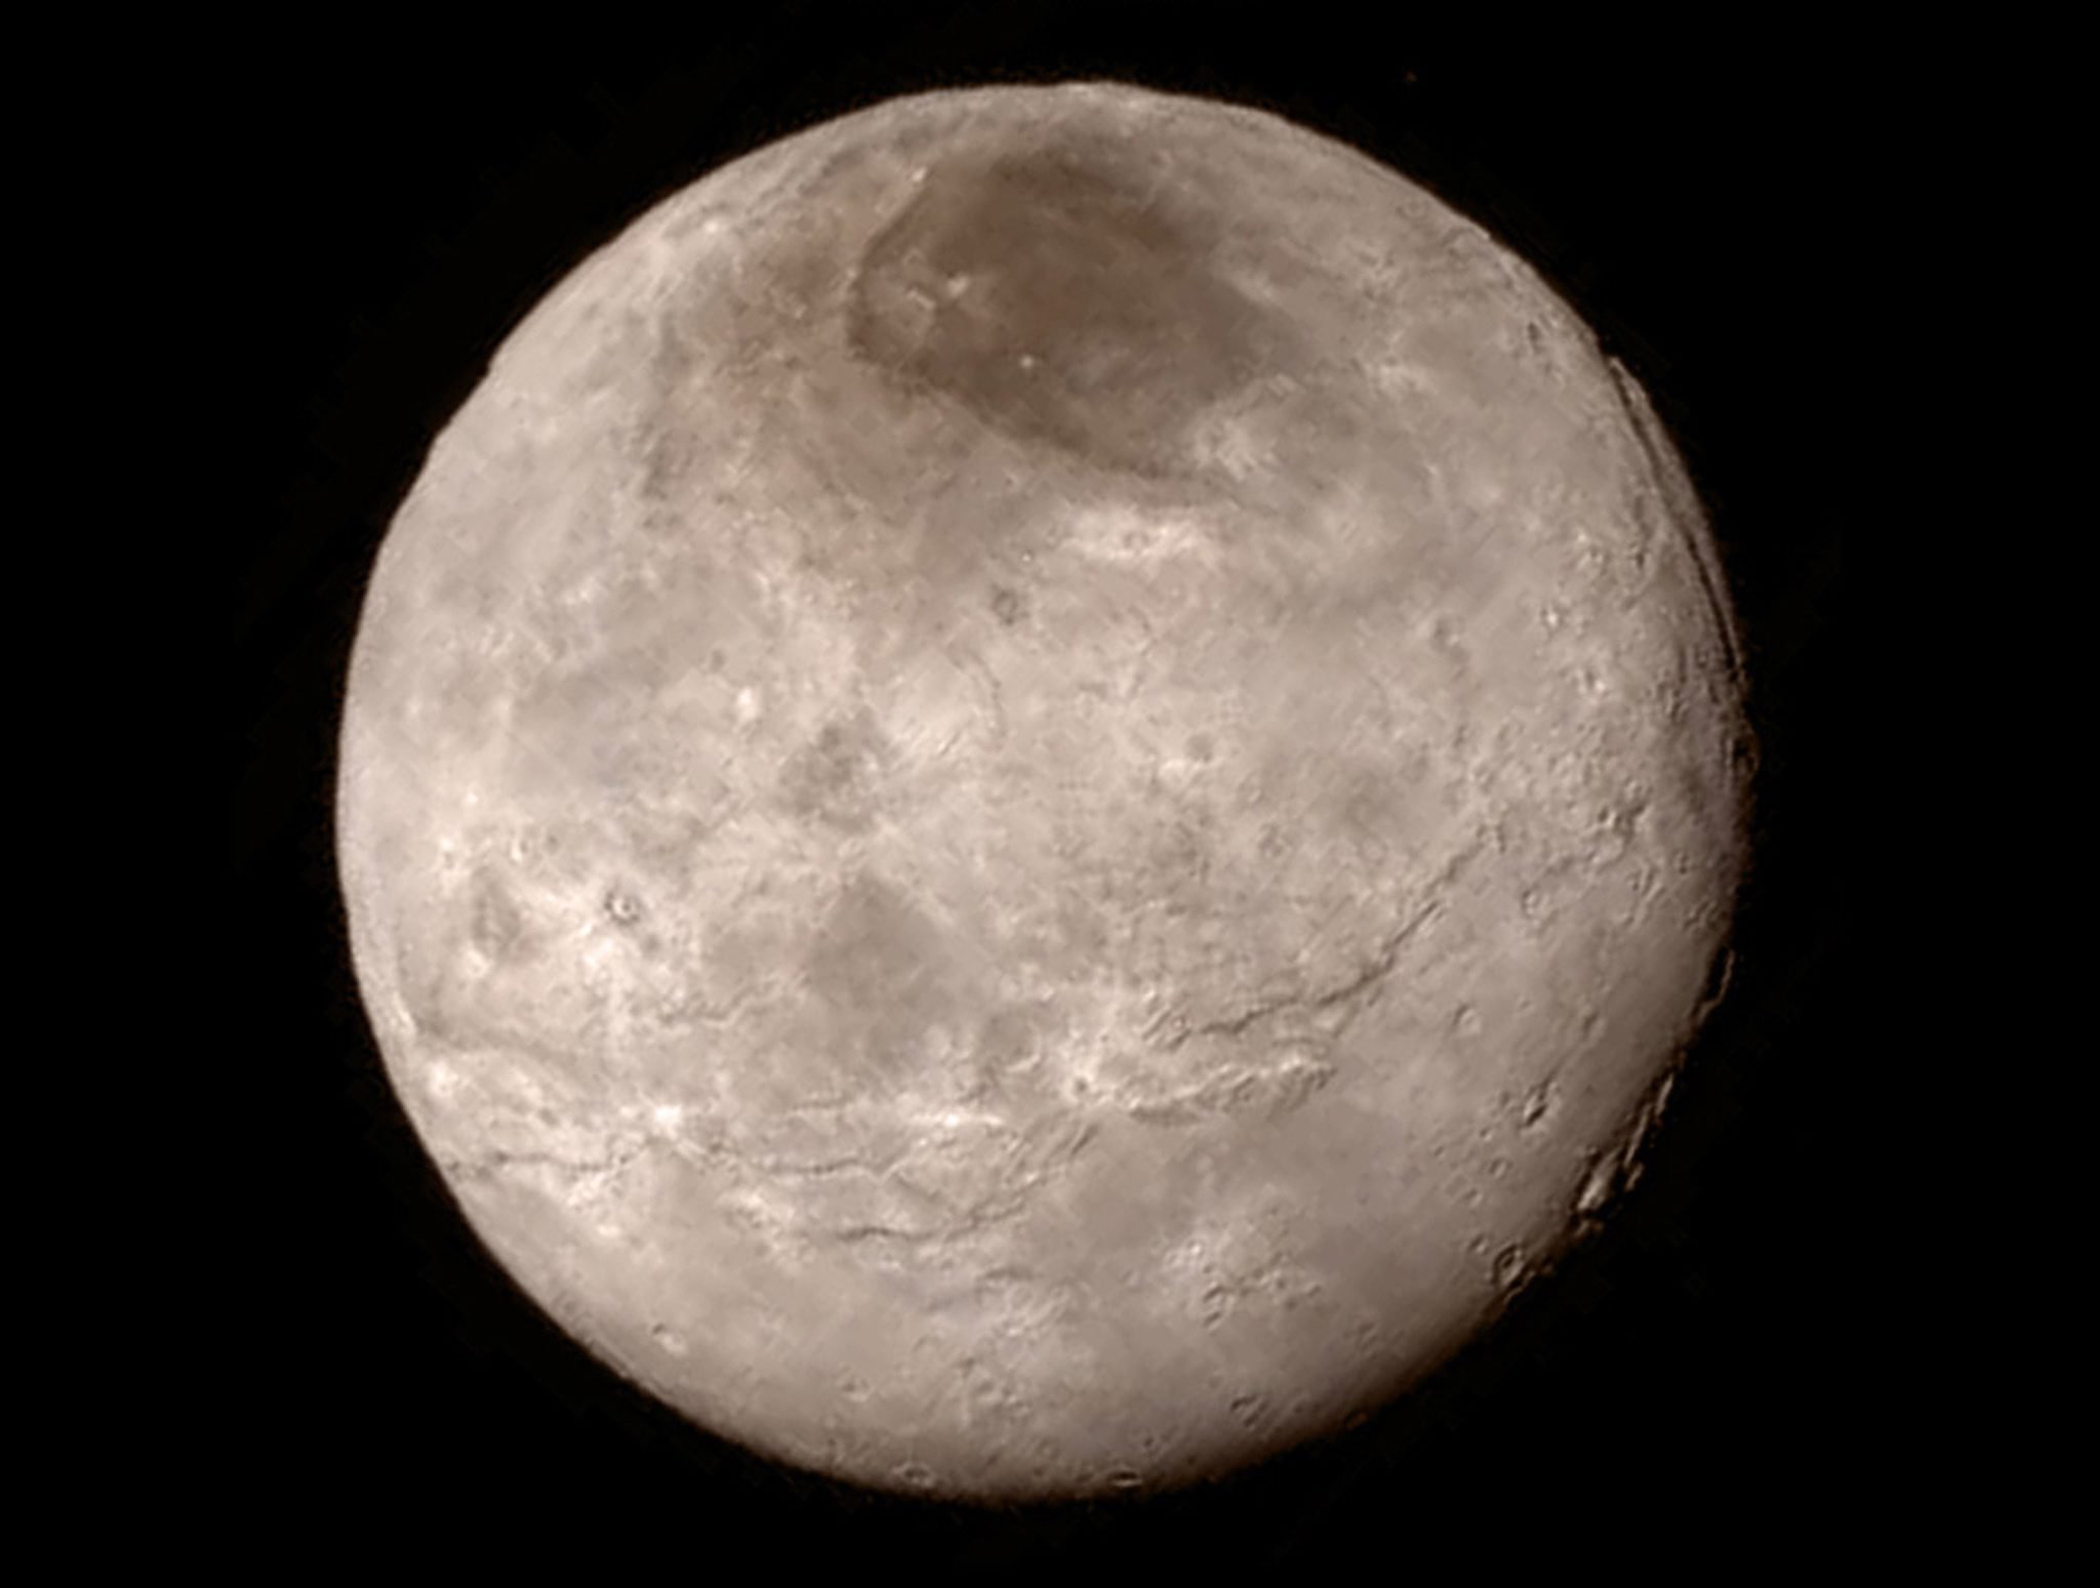 Charon, the largest moon of Pluto, captured by the New Horizons spacecraft on July 13, 2015 from a distance of 290,000 miles.